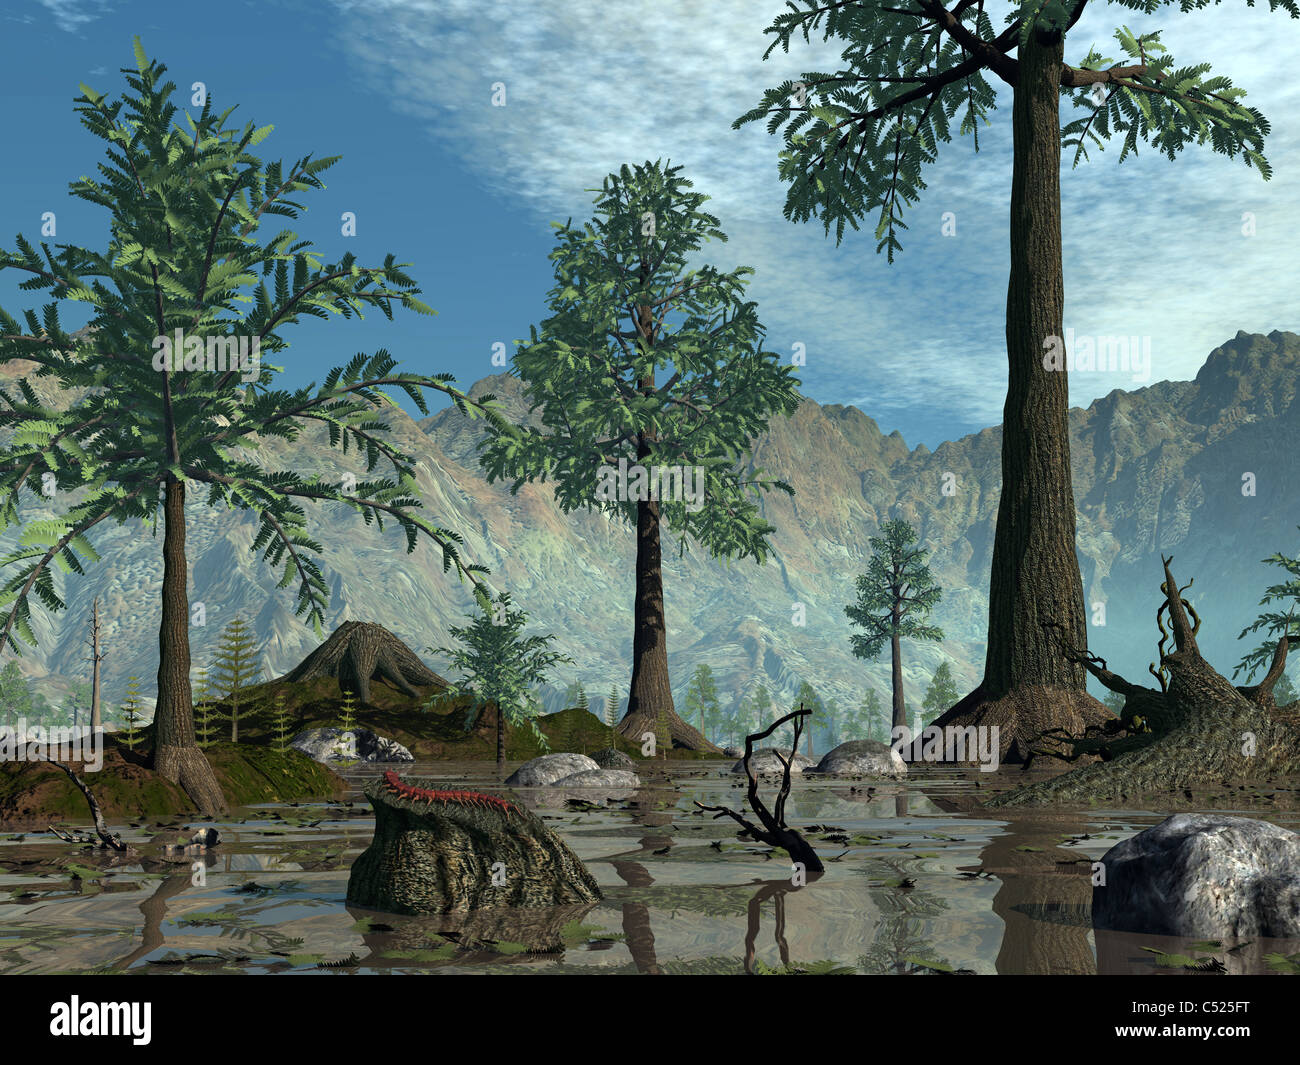 The Devonian period of the Paleozoic era: characteristics, major events, animals and plants 15